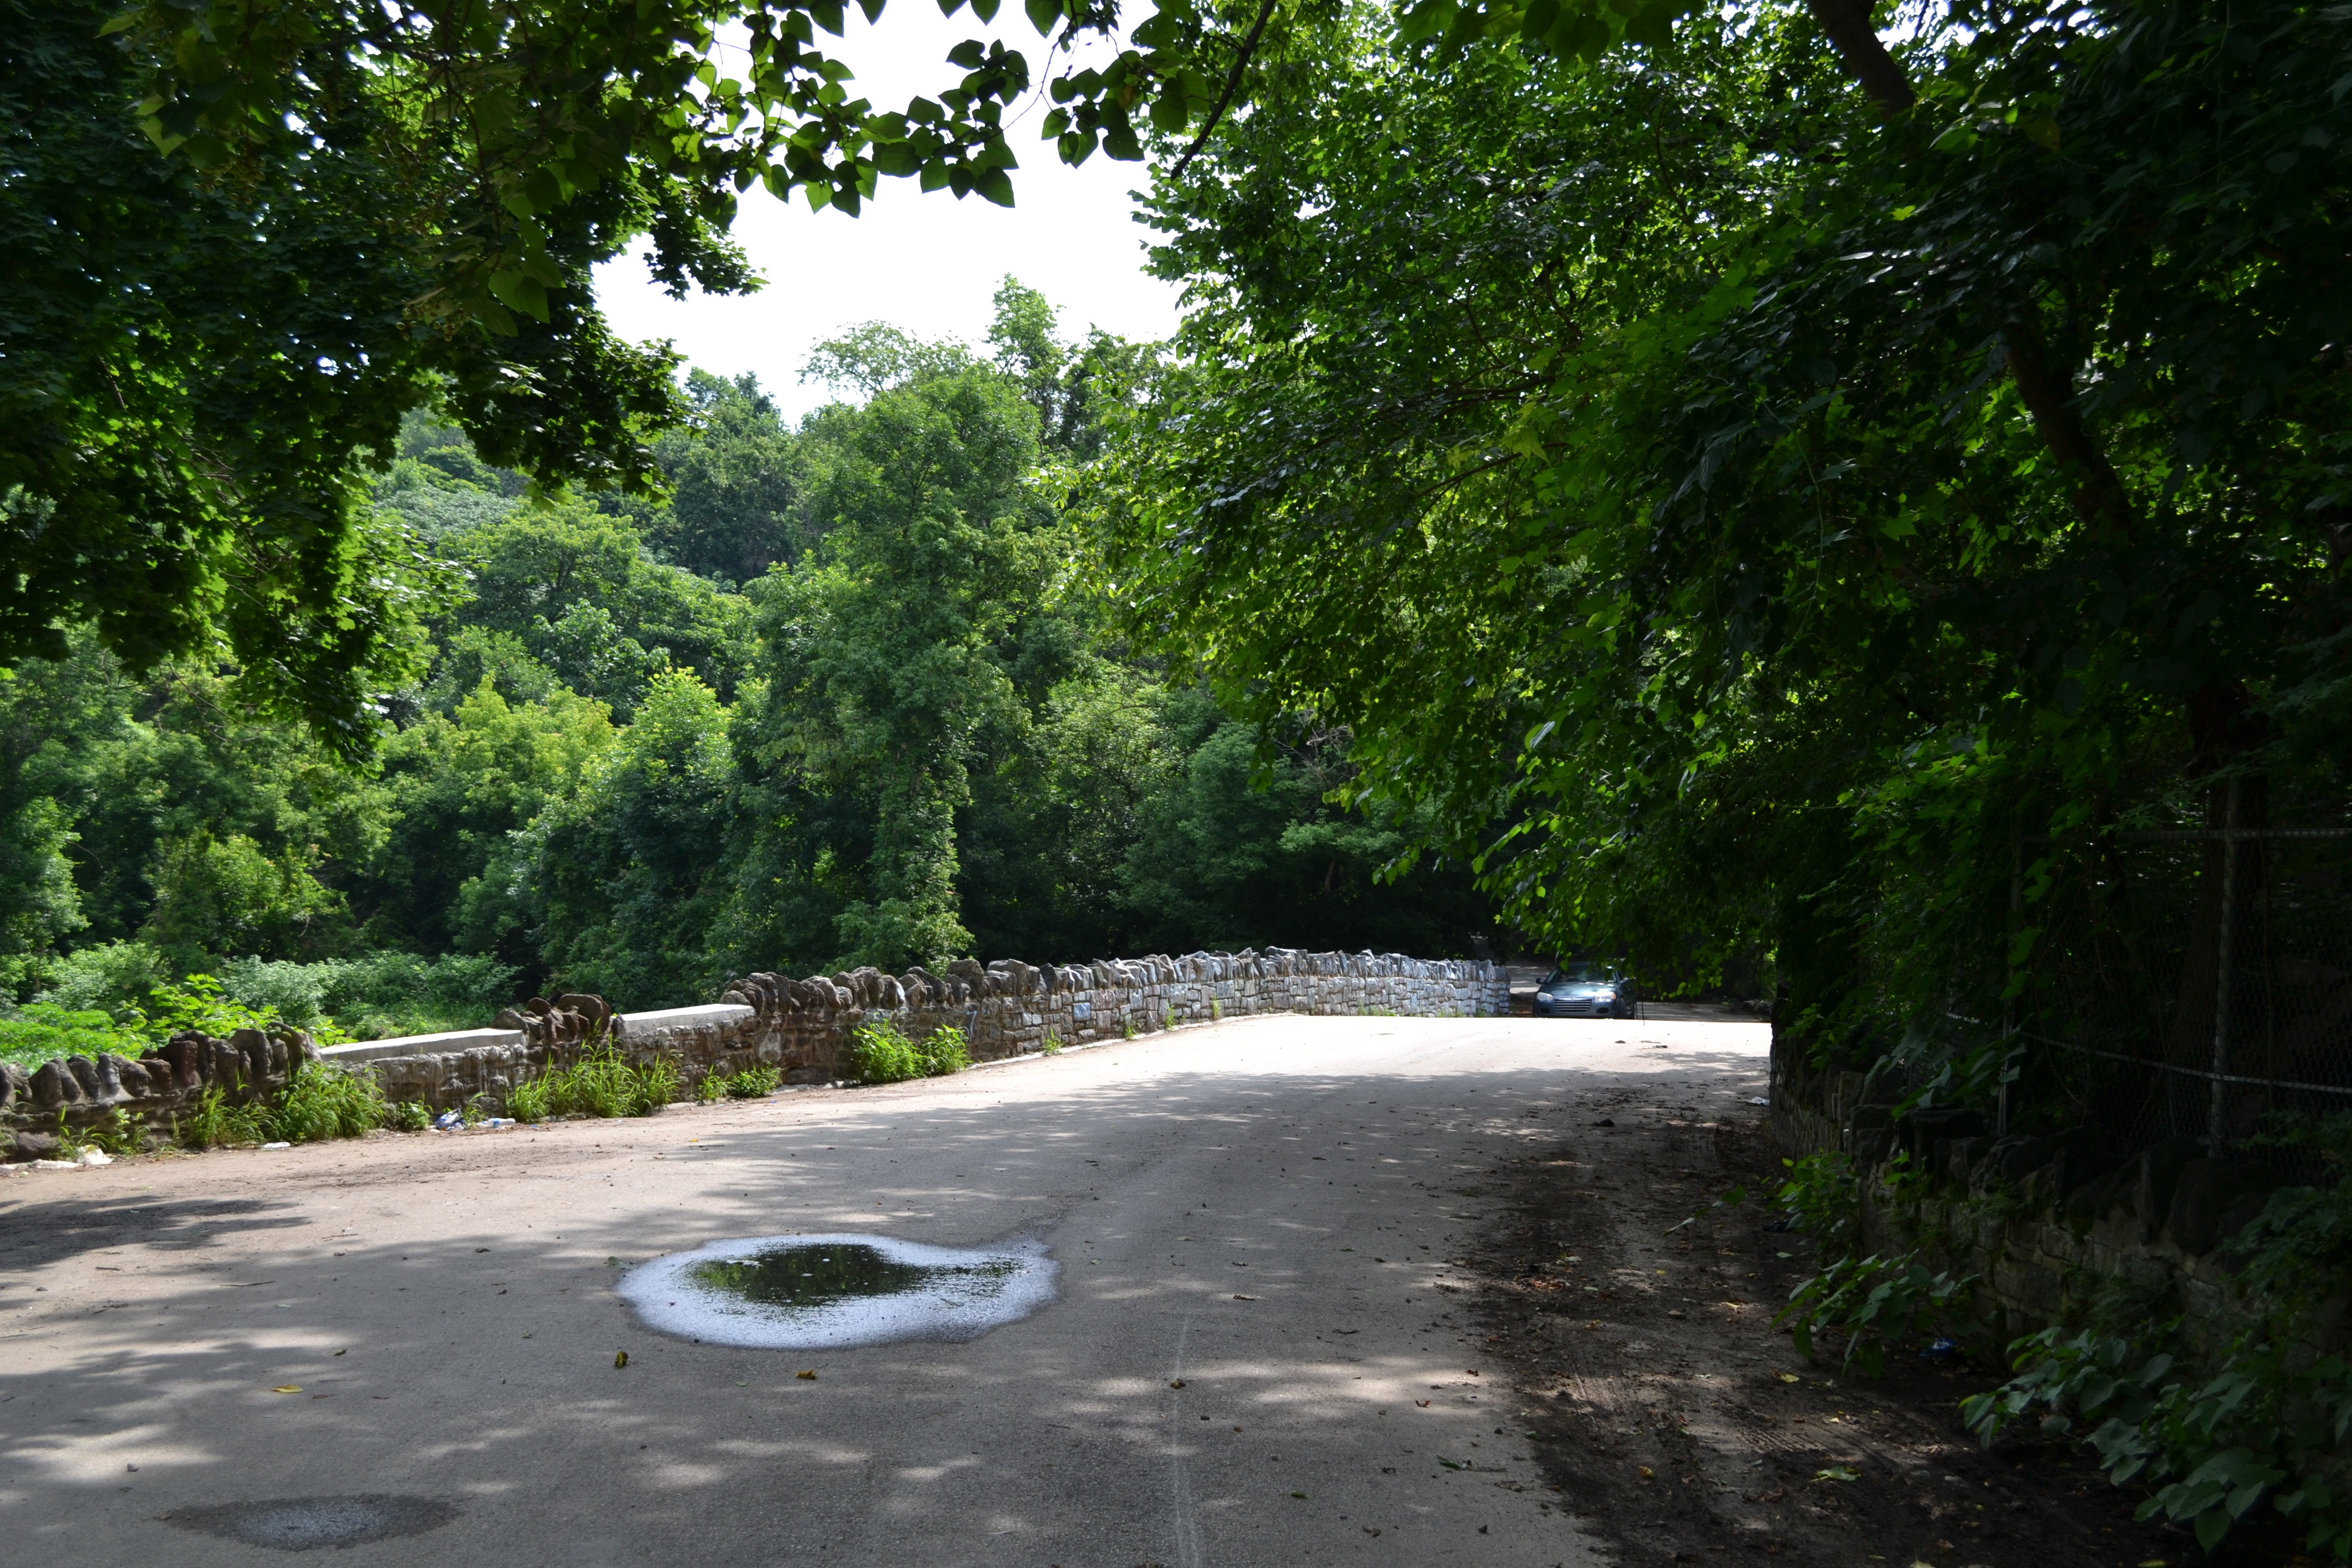 Tacony Creek Park, The trail crosses Fisher's Lane Bridge, one of the oldest bridges in Philadelphia County